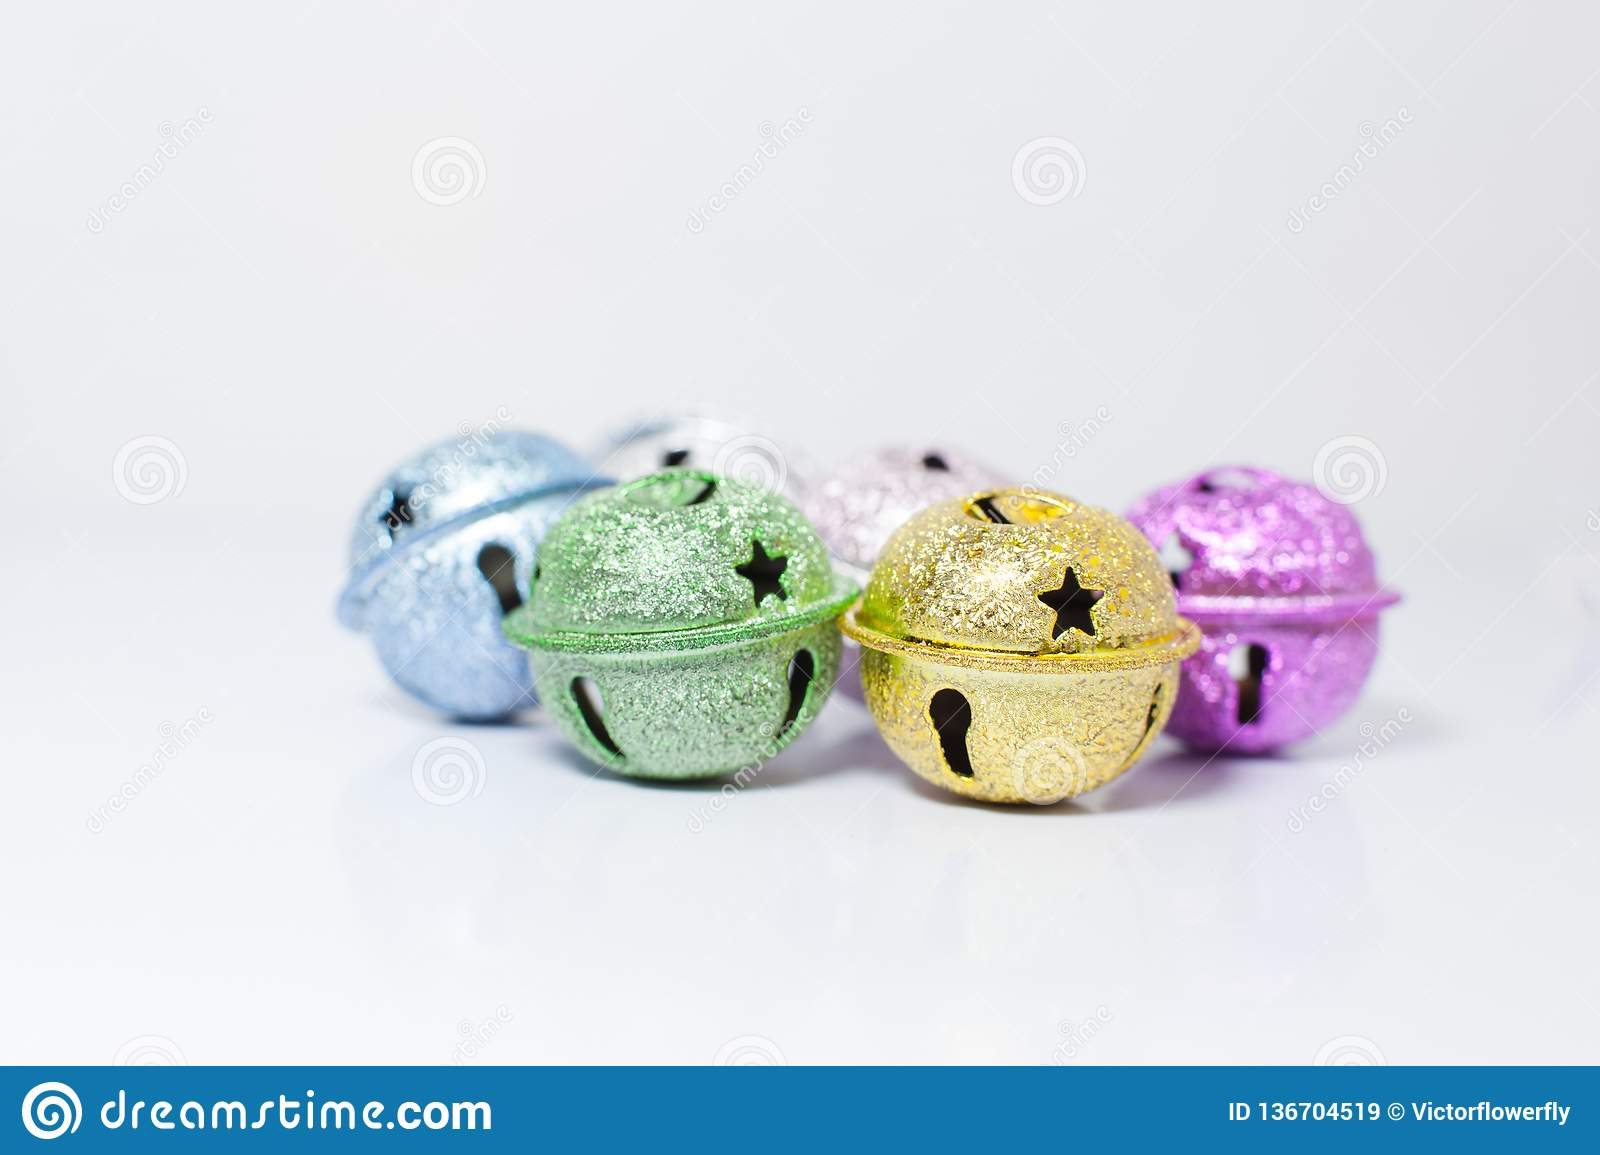 Group of Colorful painted pet small bells for cats and dogs on white background. Pet Shopping Product, Accessories, Animal Tracing